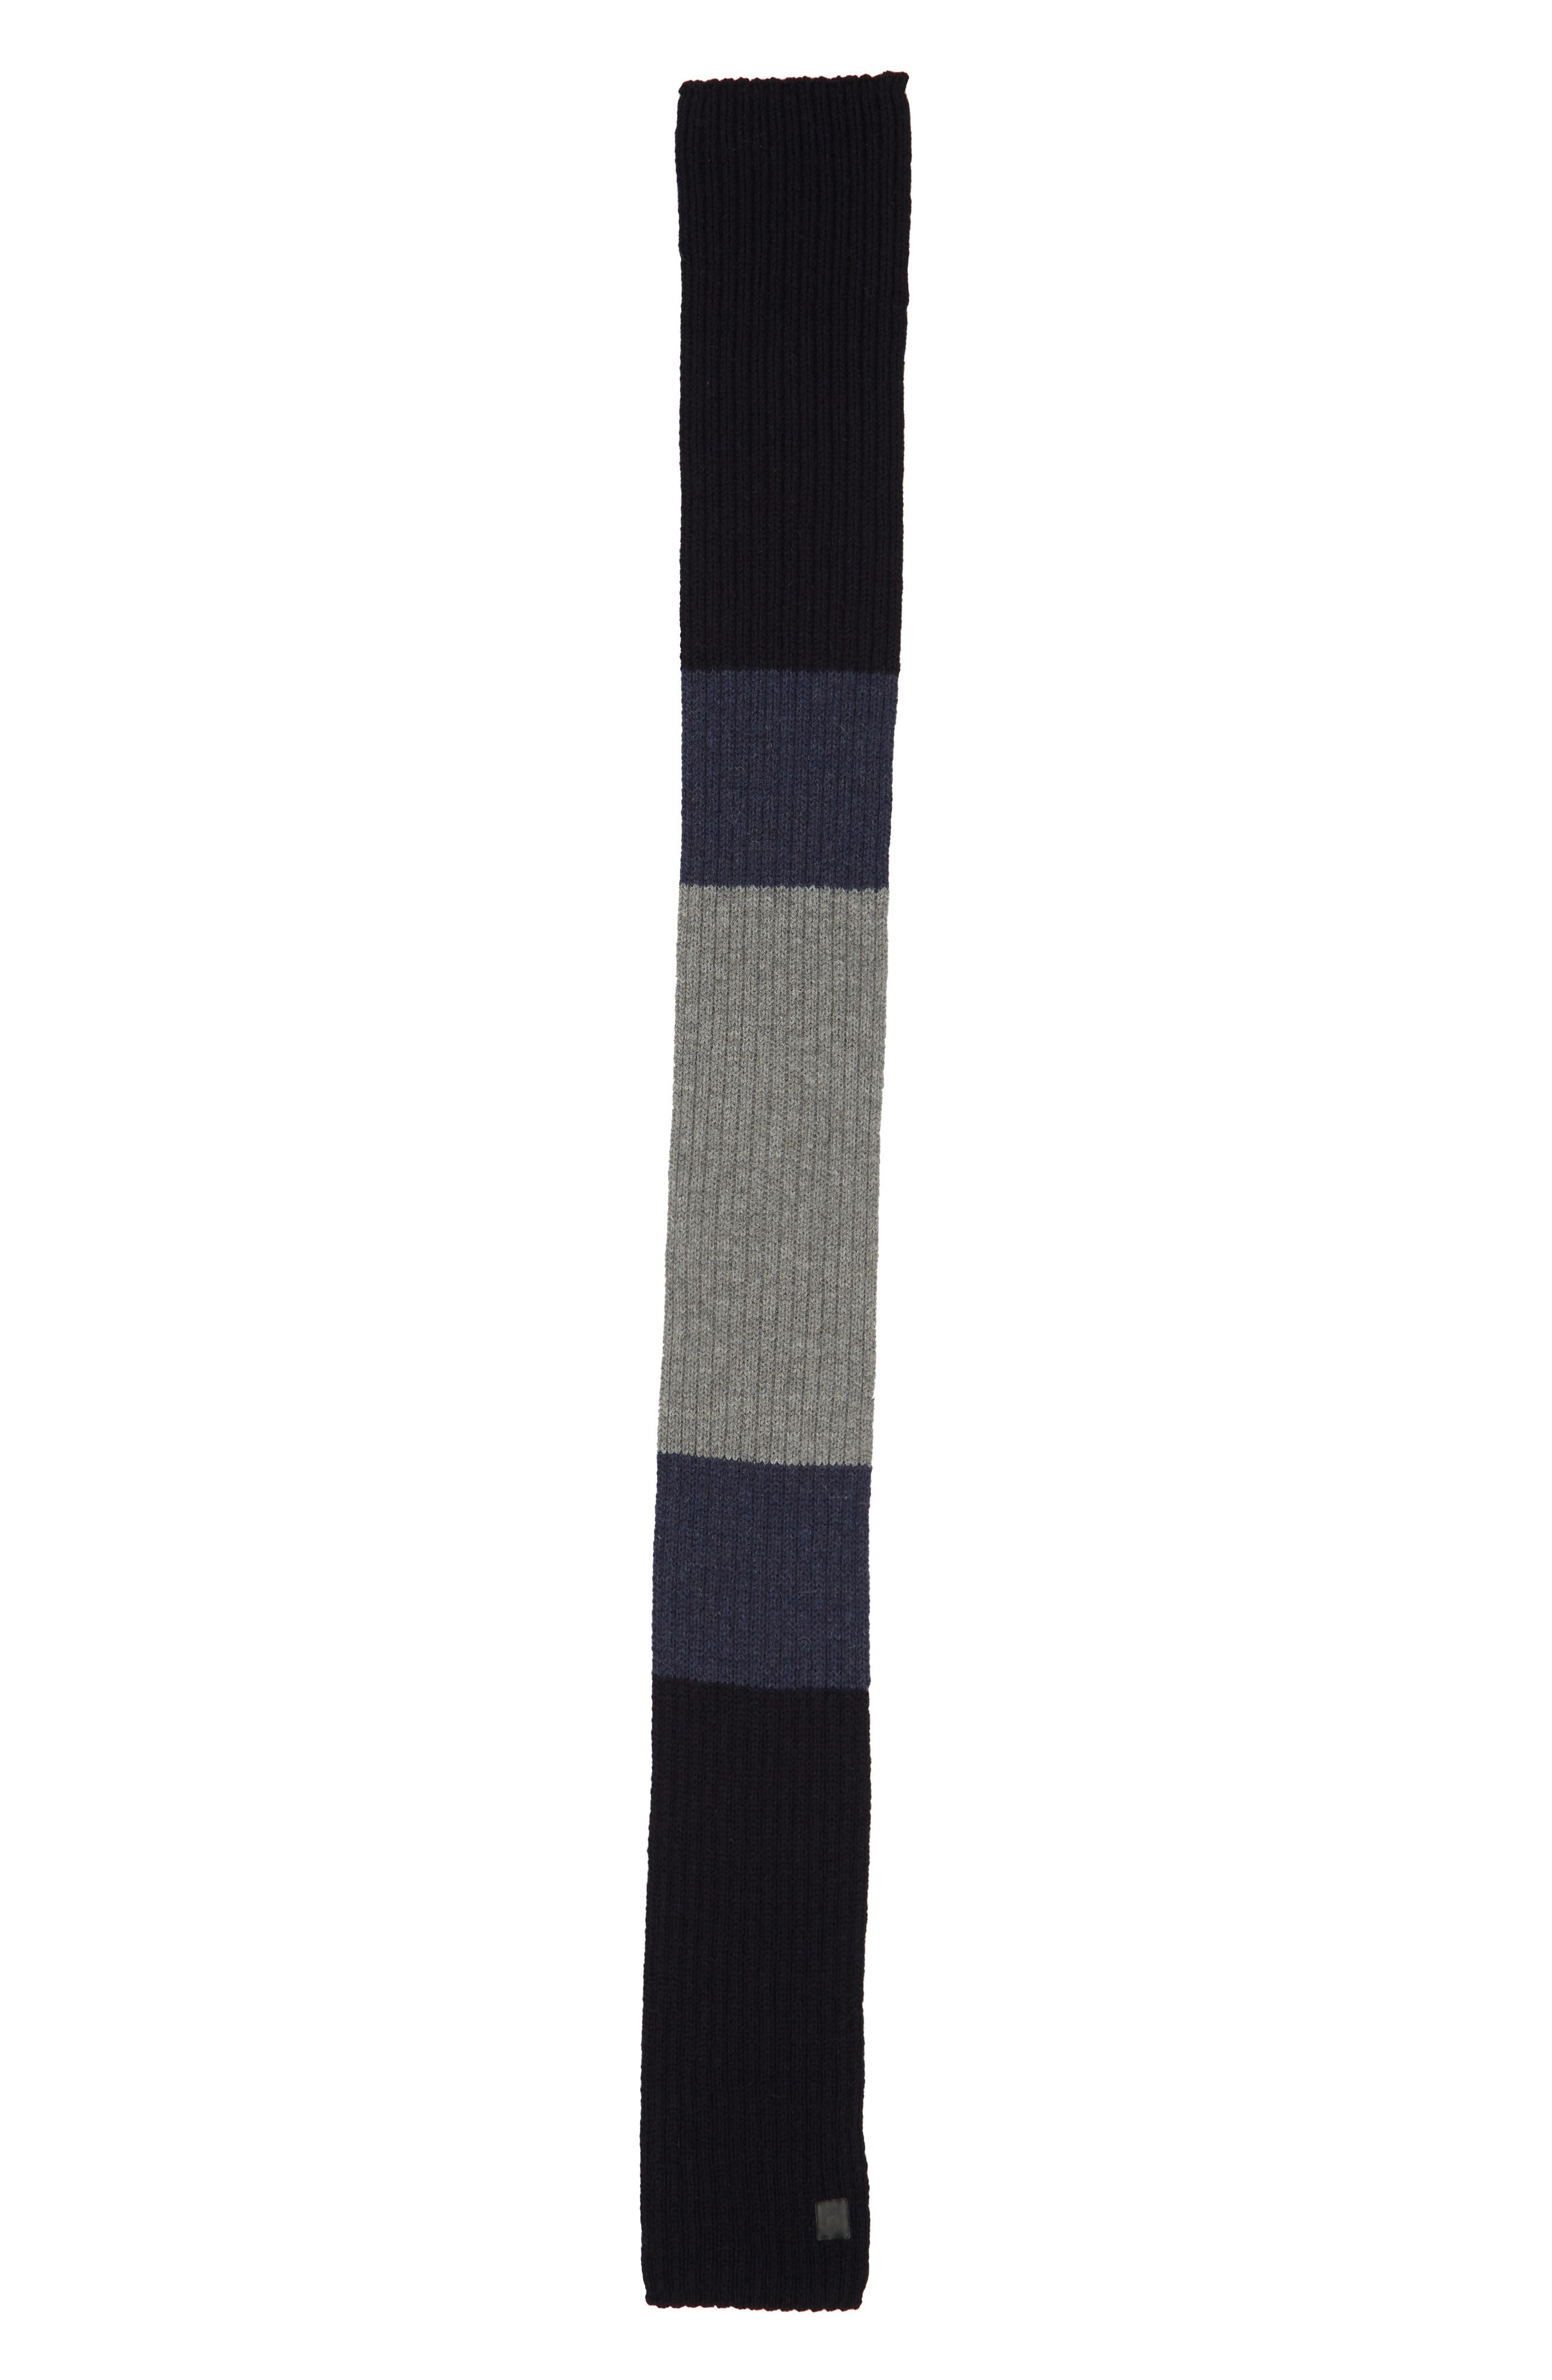 CANADA GOOSE,                             Colorblock Ribbed Wool Scarf,                             Alternate thumbnail 2, color,                             NAVY